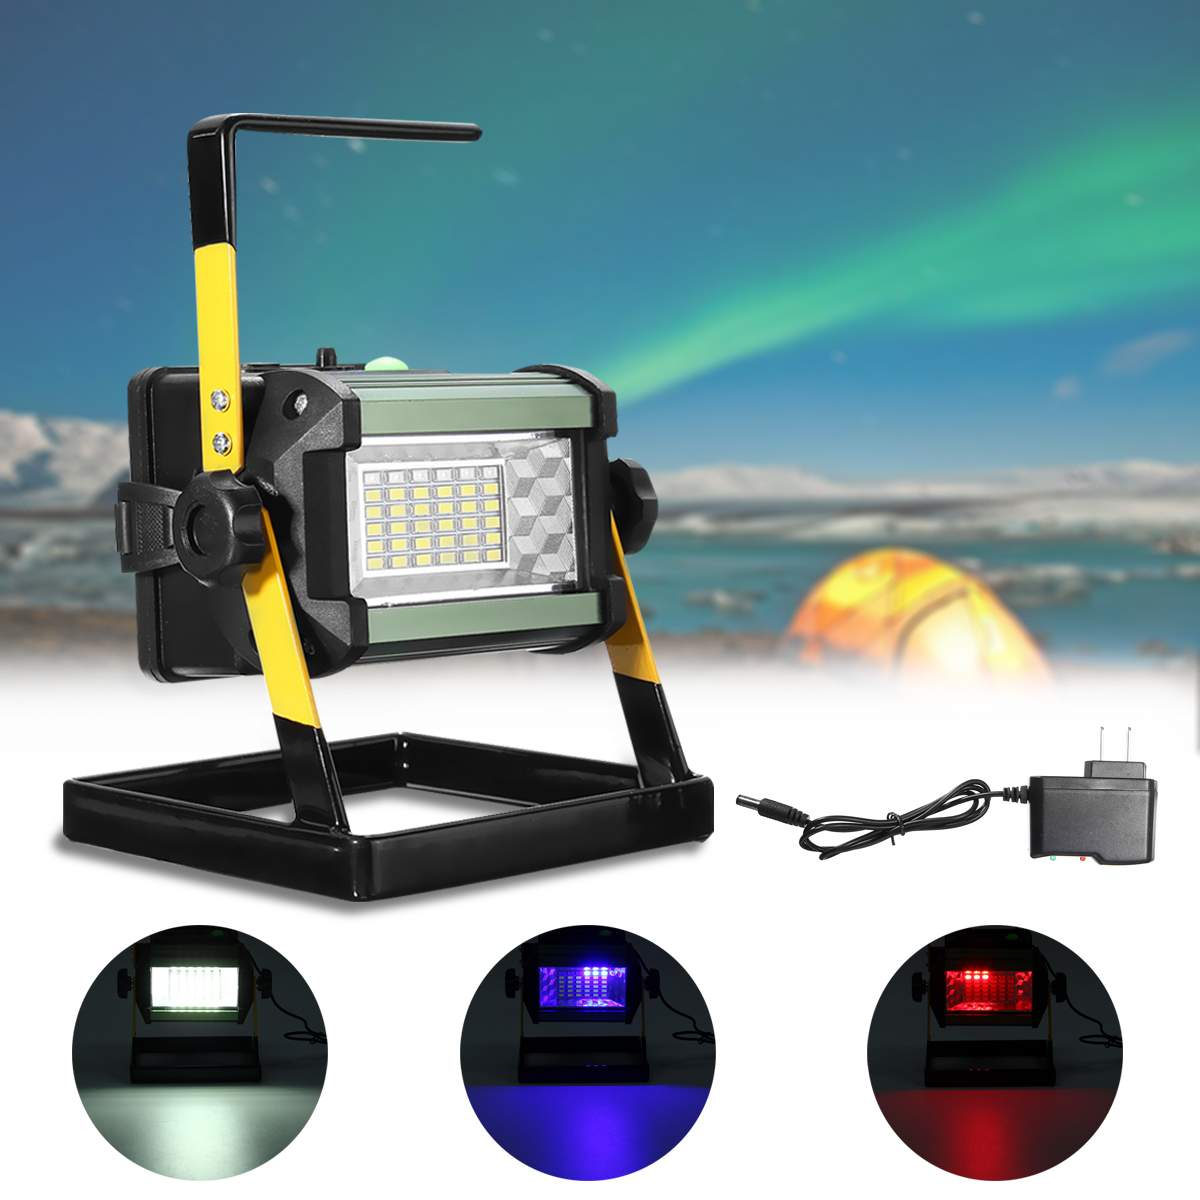 AC110-240V Rechargeable LED Flood Light 50W 2400LM 36 LED Floodlights Spot Camping Portable Outdoor Flashing Lamp EU/US plugAC110-240V Rechargeable LED Flood Light 50W 2400LM 36 LED Floodlights Spot Camping Portable Outdoor Flashing Lamp EU/US plug